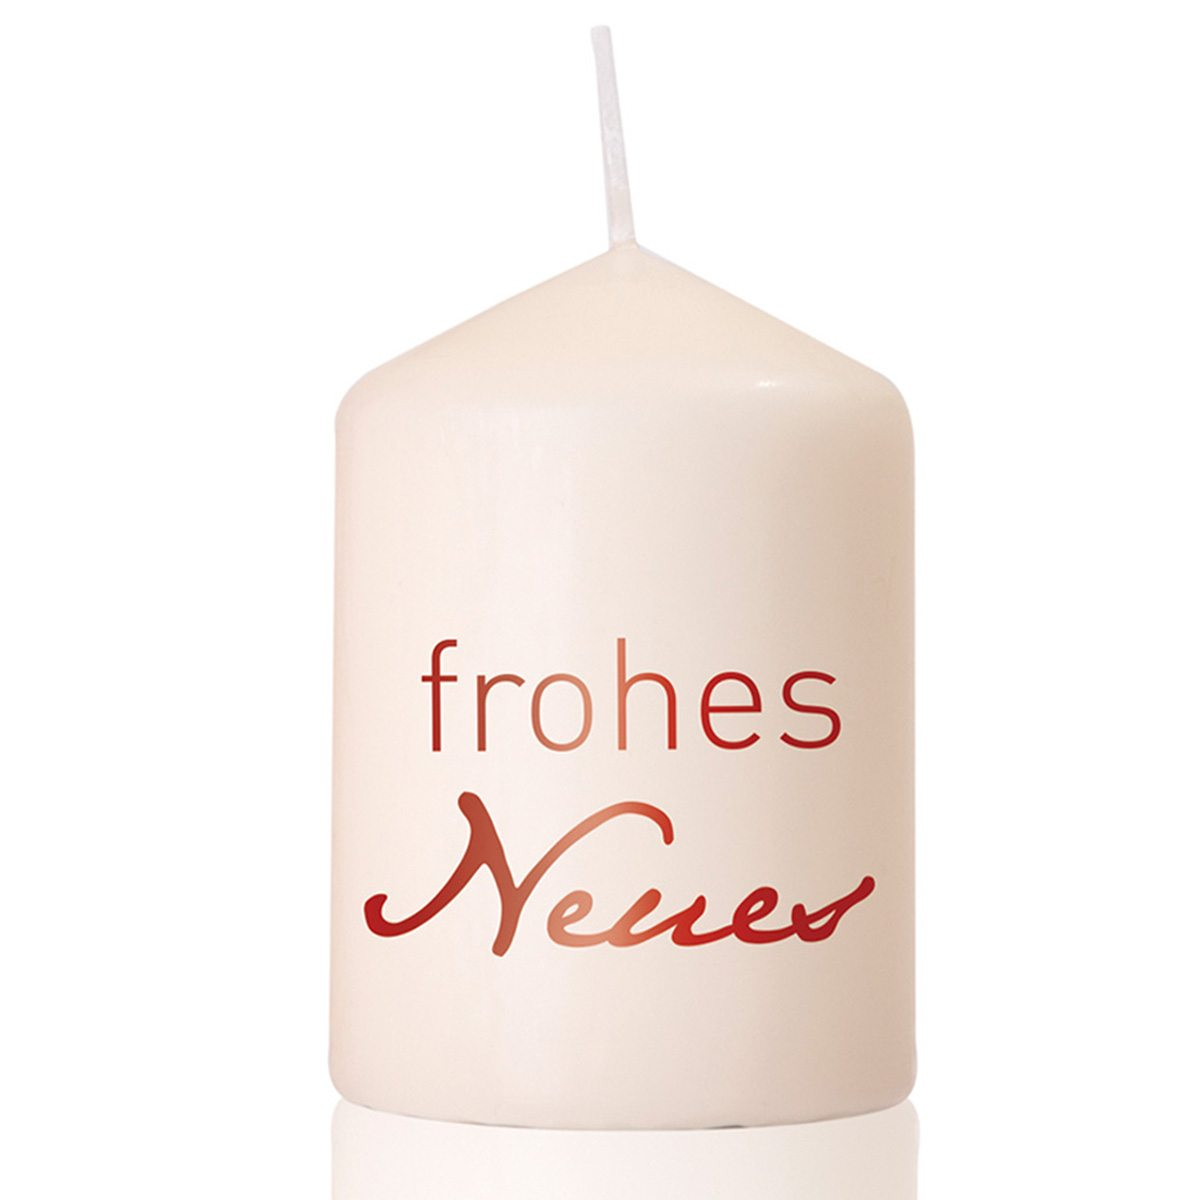 Kerze Frohes Neues